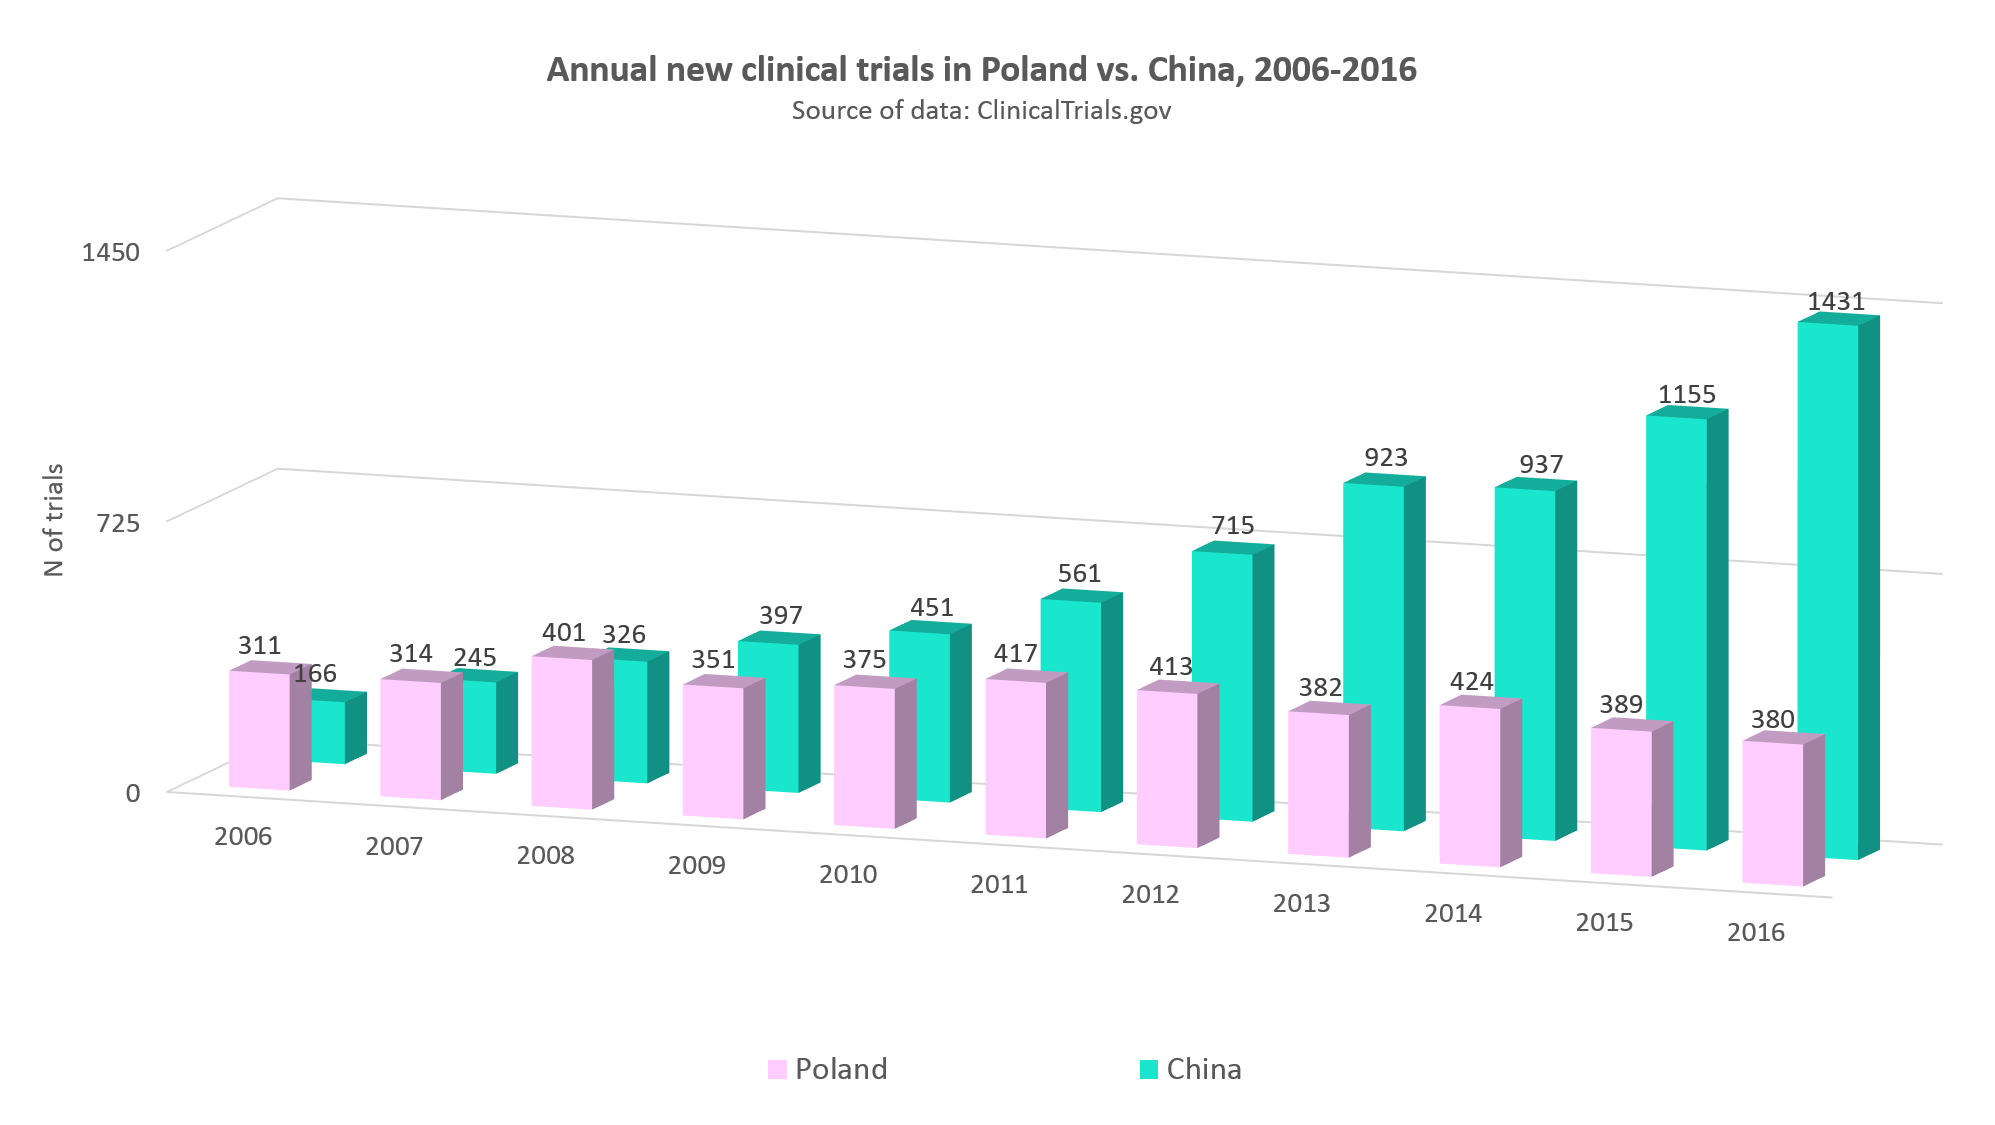 Annual statistics of clinical trials in Poland vs. China, 2006-2016